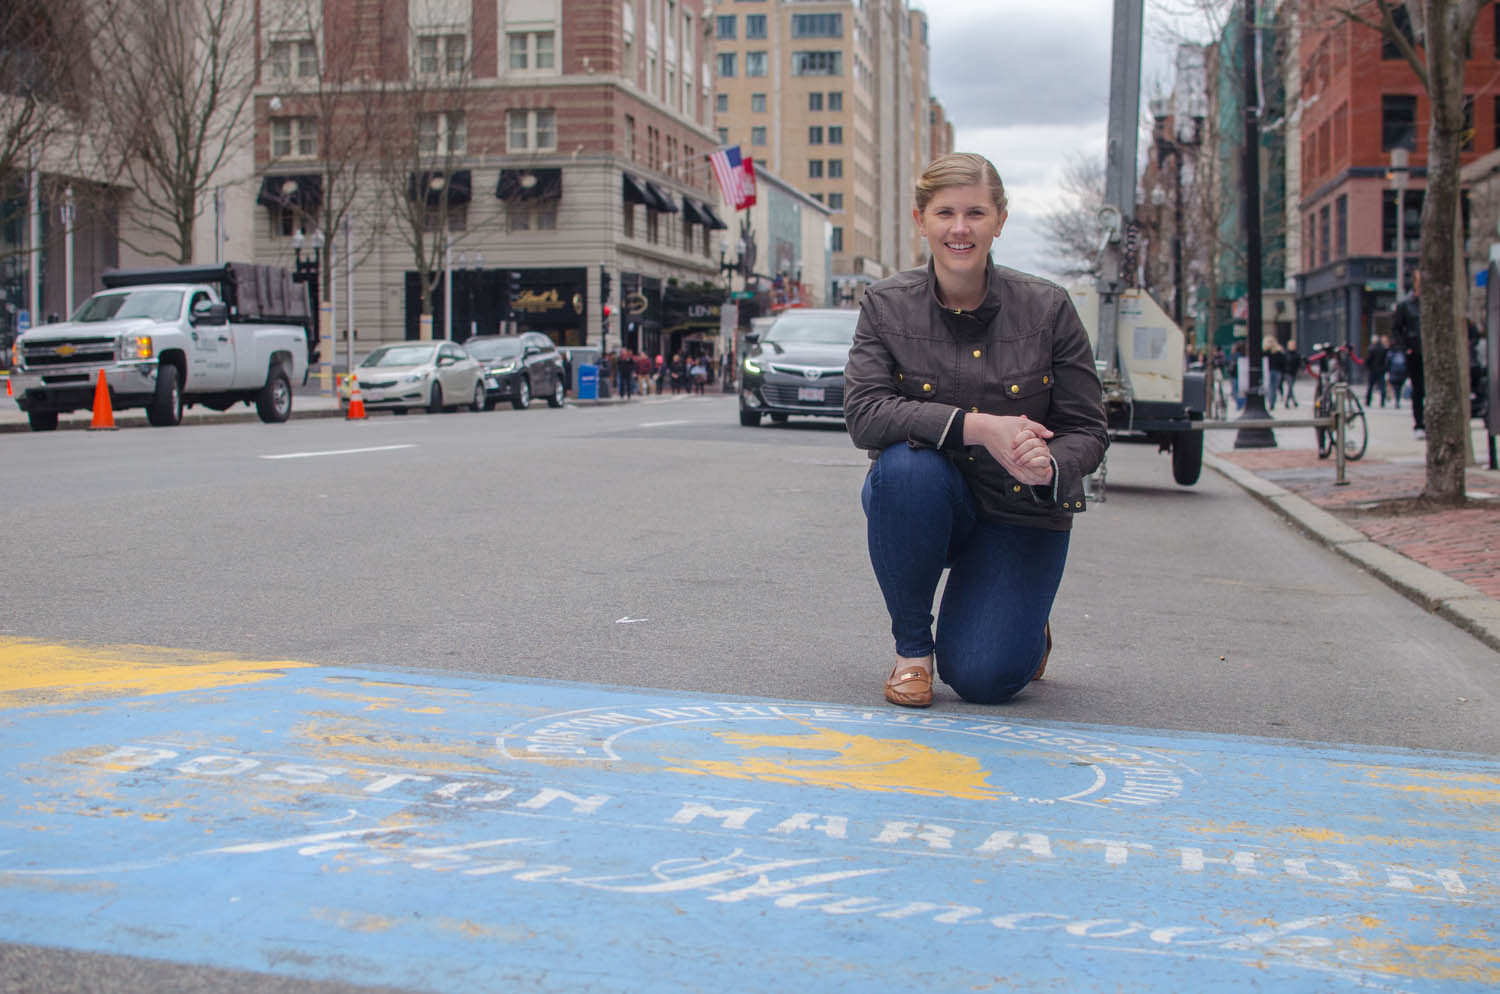 Meghan Connors kneels at the finish line of the Boston Marathon on Boylston Street. This year she's running her fifth Boston Marathon, supporting the MGH Pediatric Oncology division where she was treated for neuroblastoma when she was three years old. (Sharon Brody/WBUR)